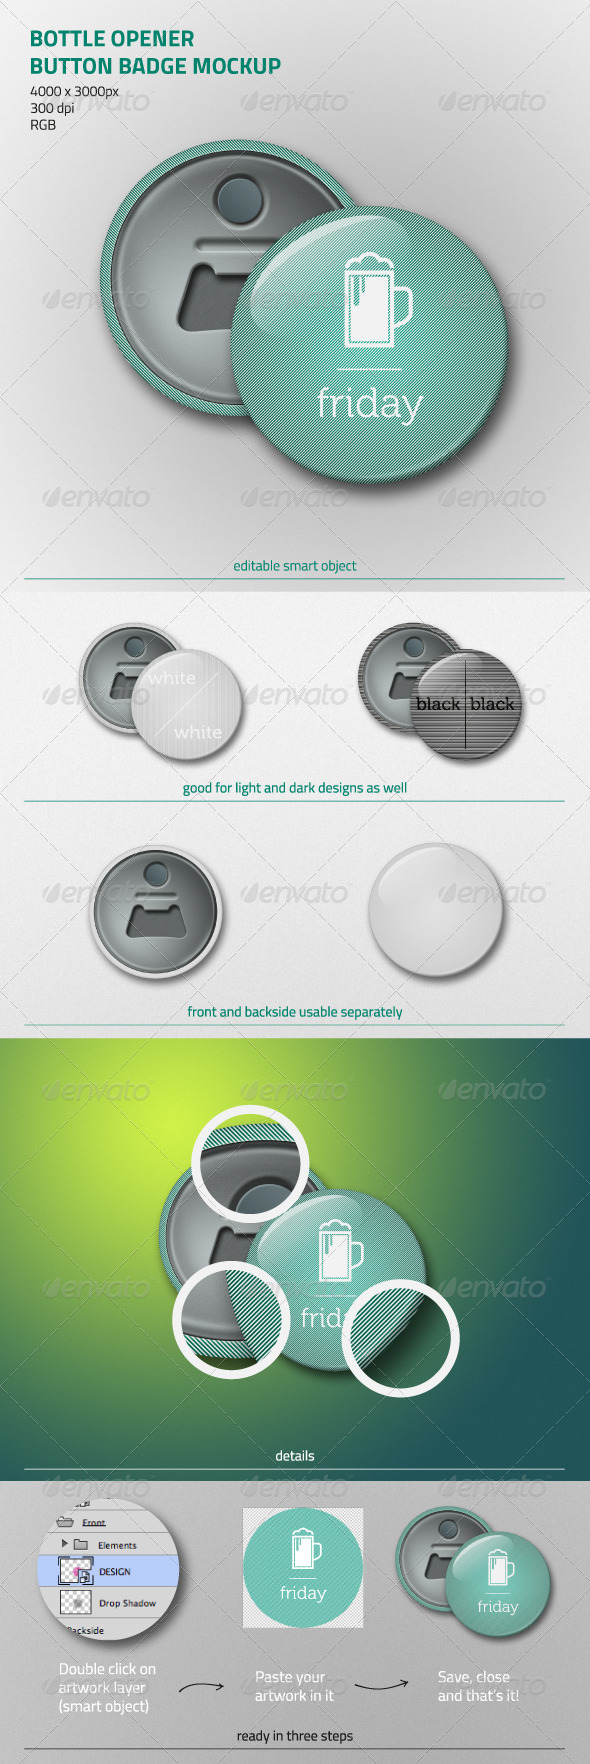 Bottle Opener Button Badge Mockup